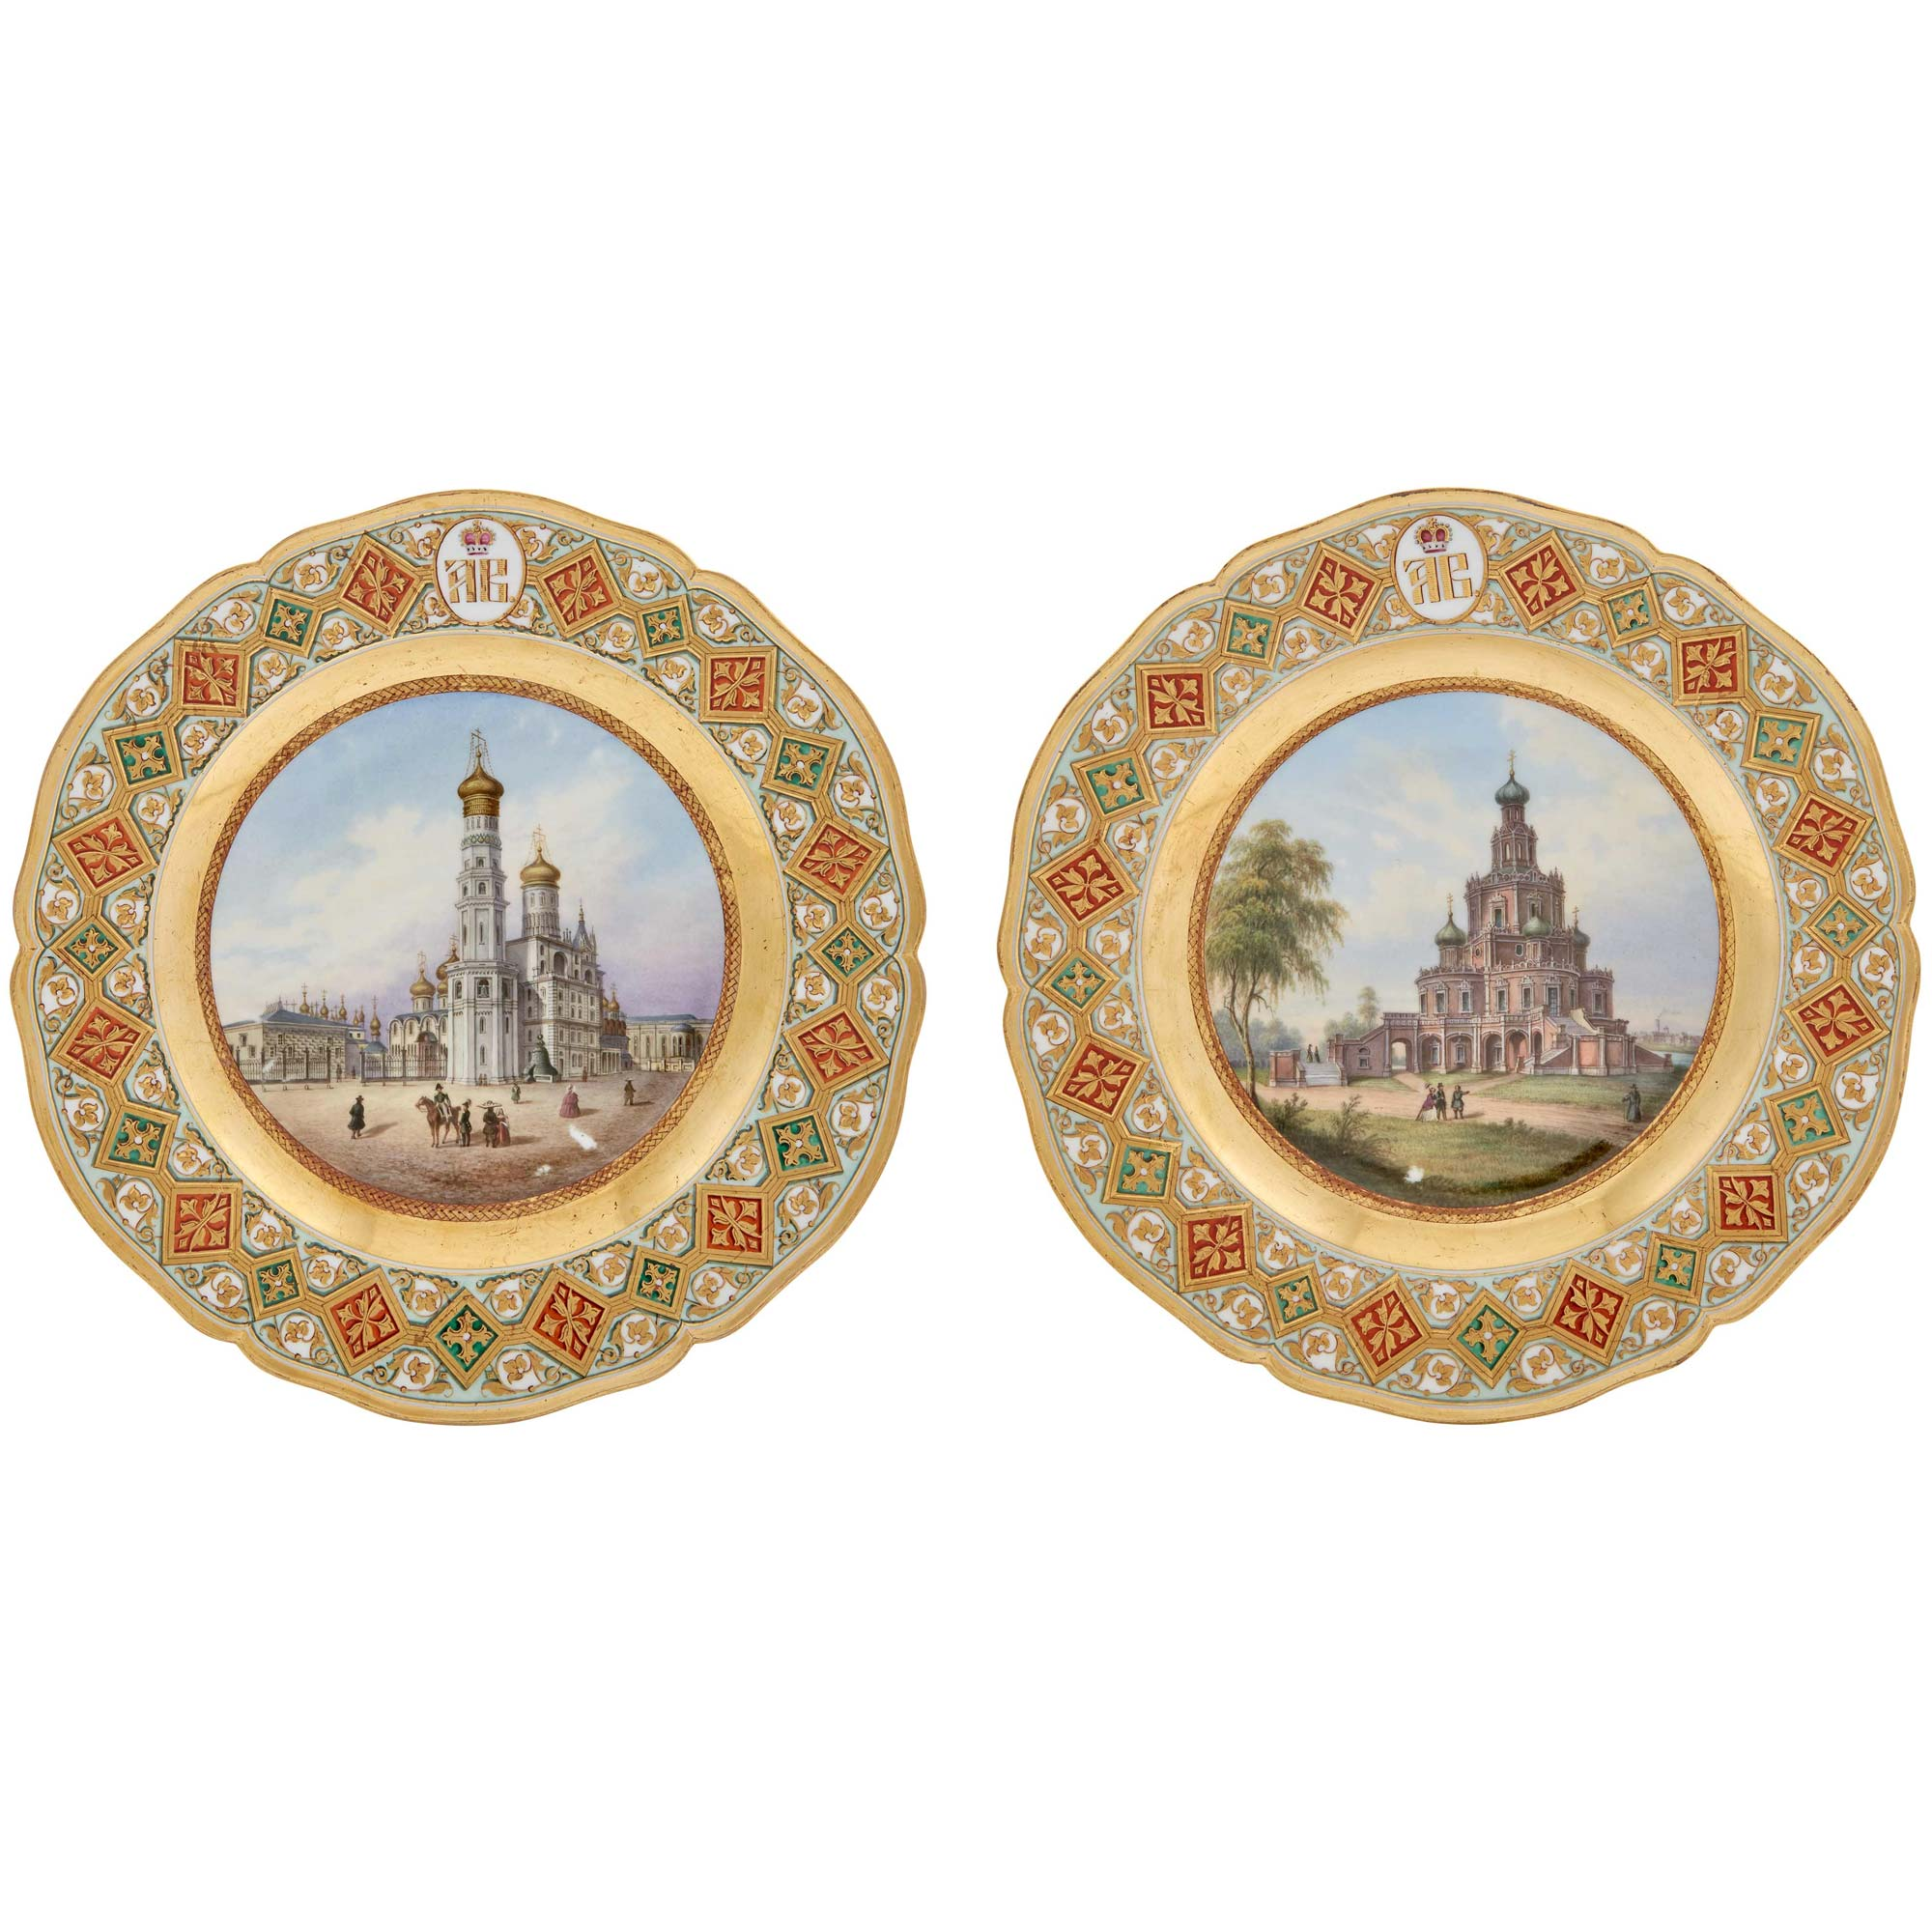 Lot image - Two Berlin (K.P.M.) Porcelain Plates with Russian Architectural Views